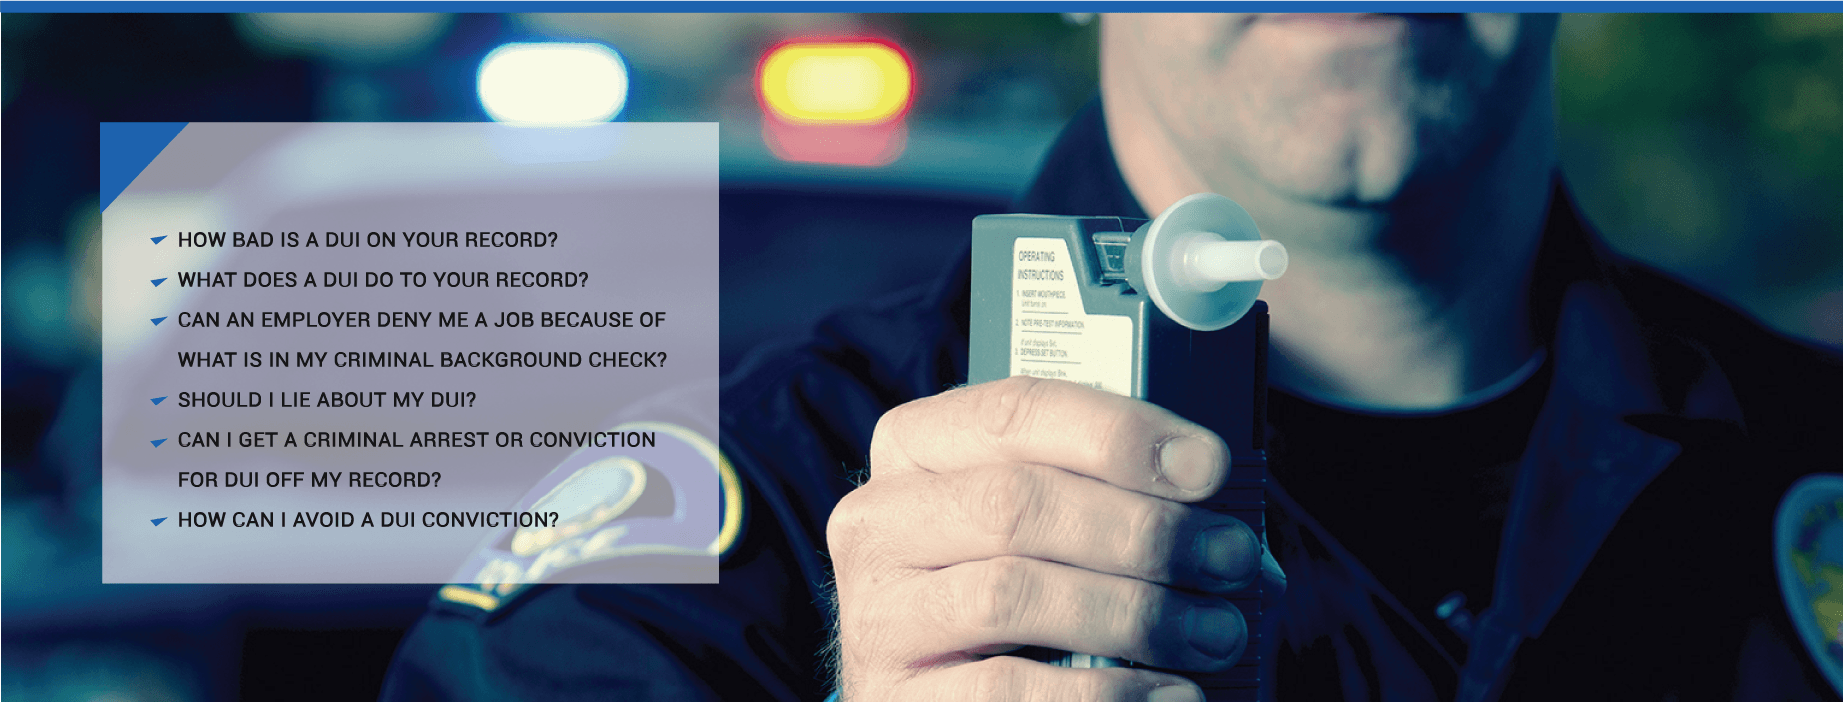 12 Questions Answered About DUI and Background Check